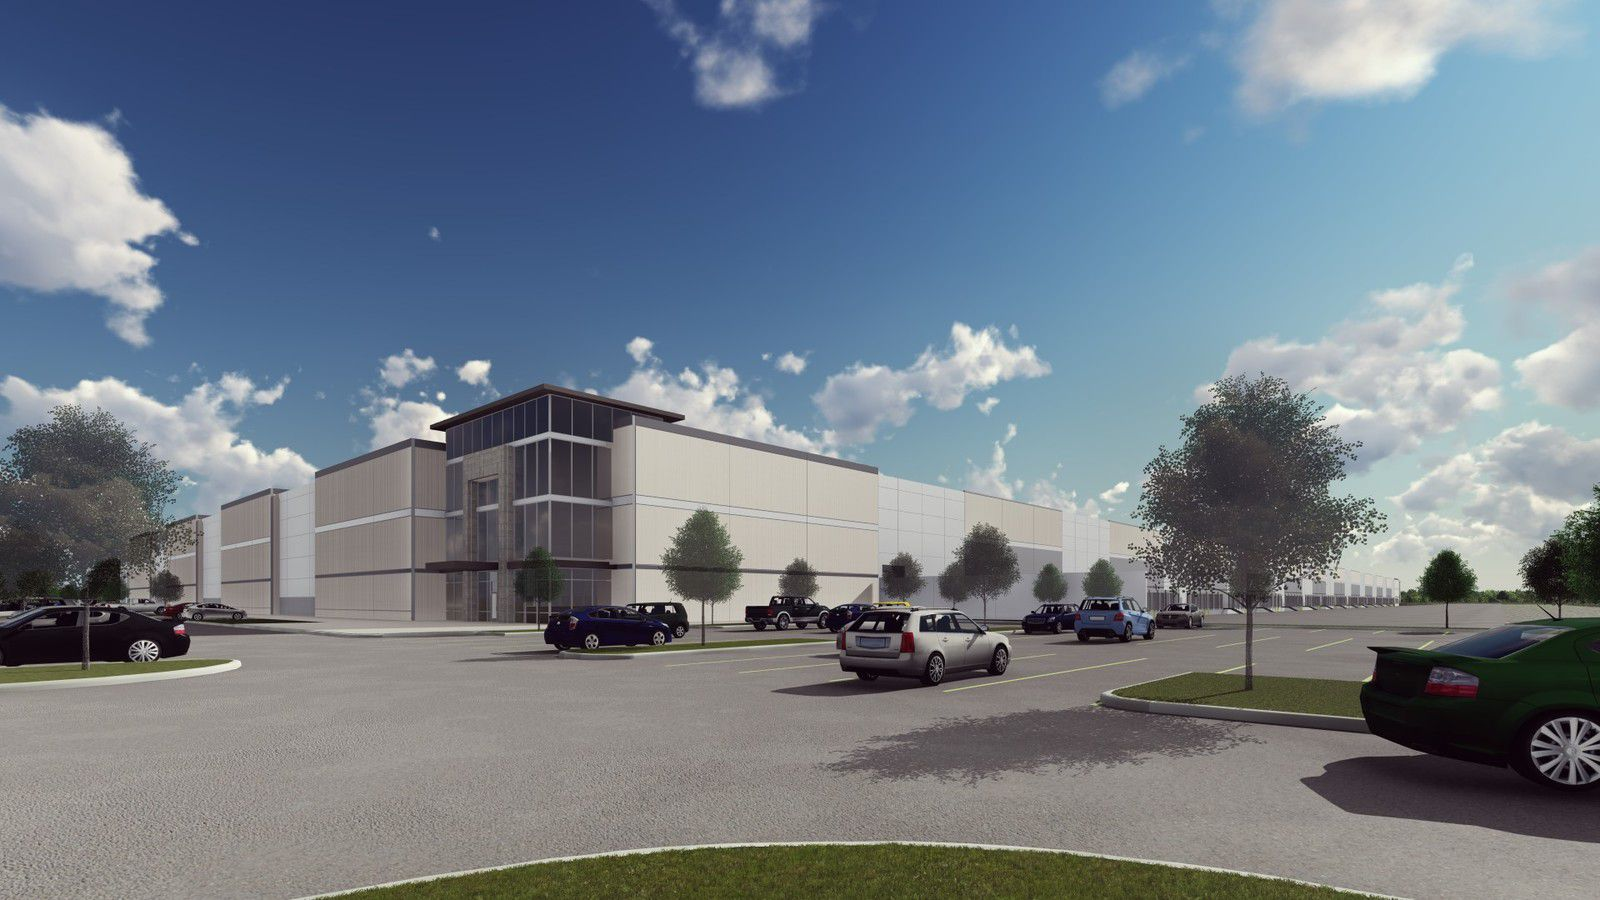 Tempur Sealy is working on a new distribution center in Trammell Crow's Passport Park project.